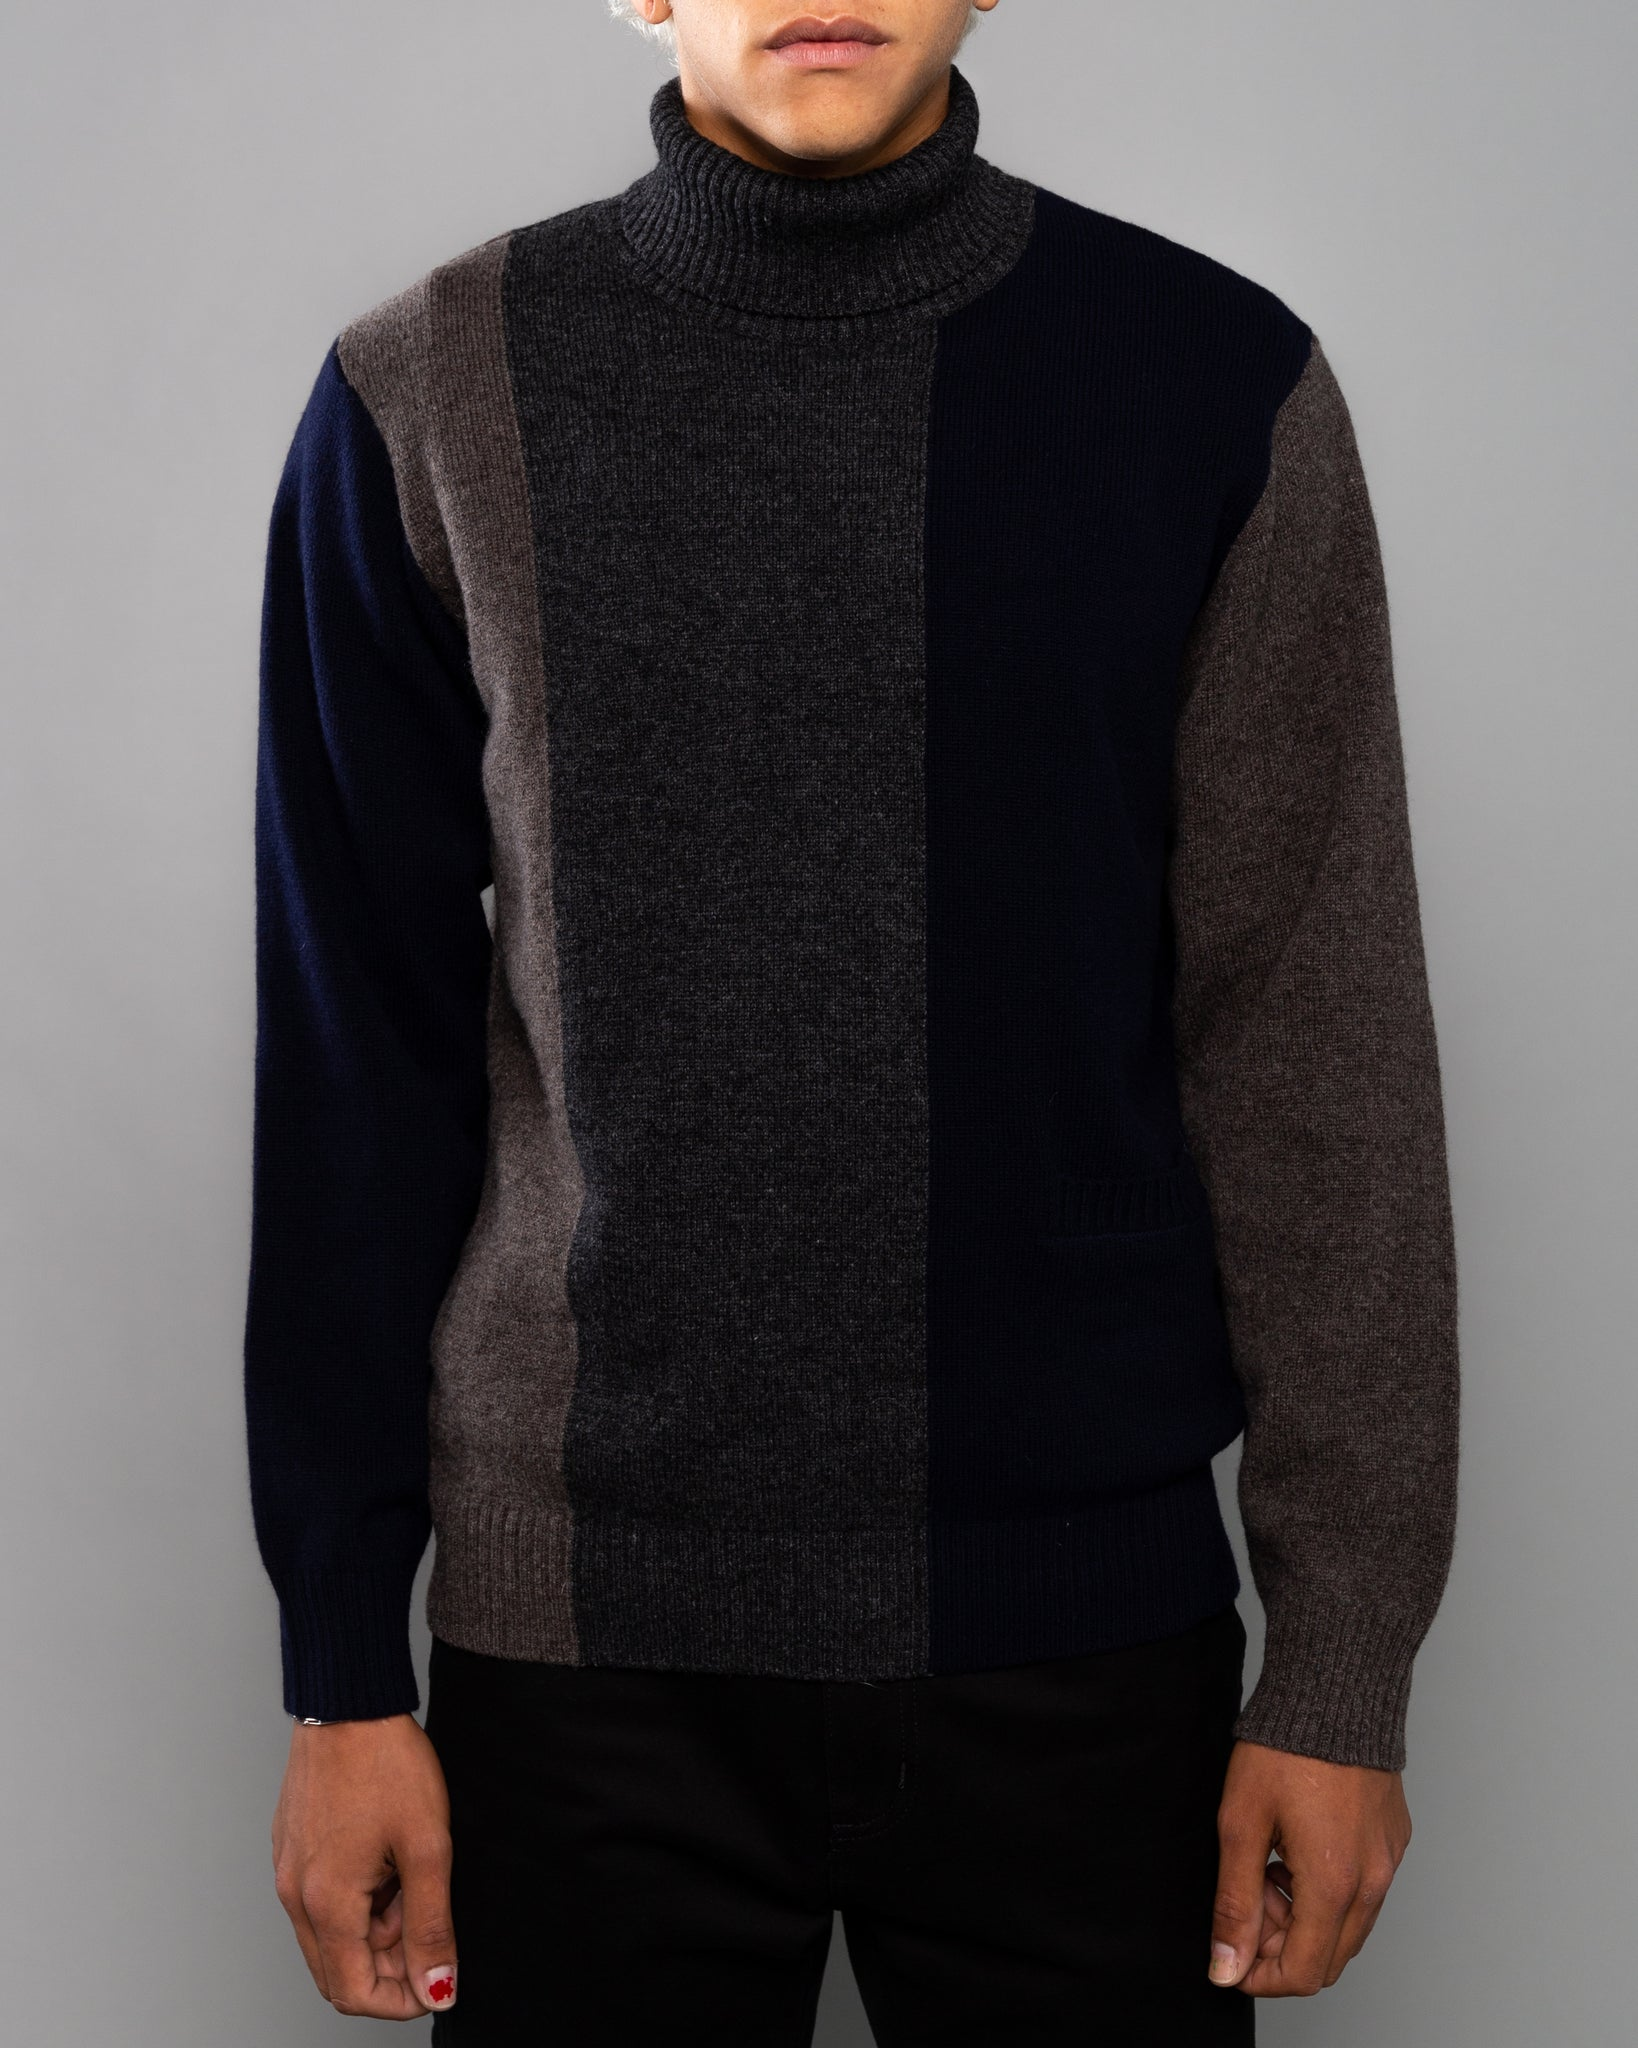 UCZ4901 Sweater Charcoal